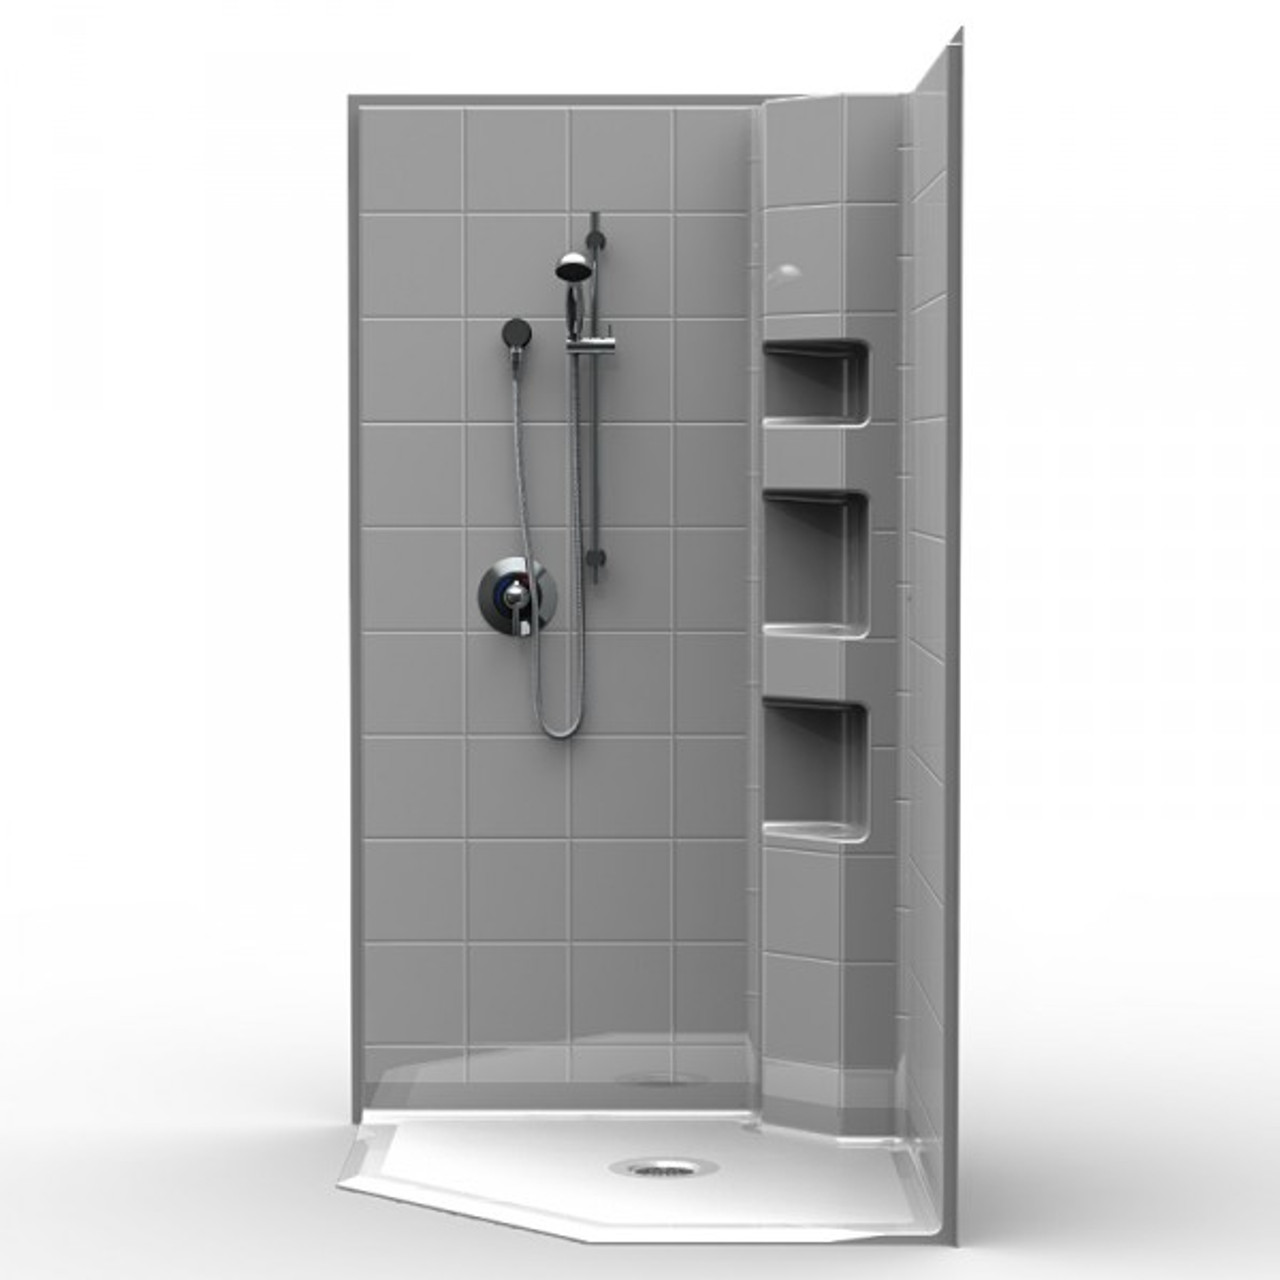 Neo Angle Barrier Free Shower · Wheelchair Access Corner Shower 42 ...